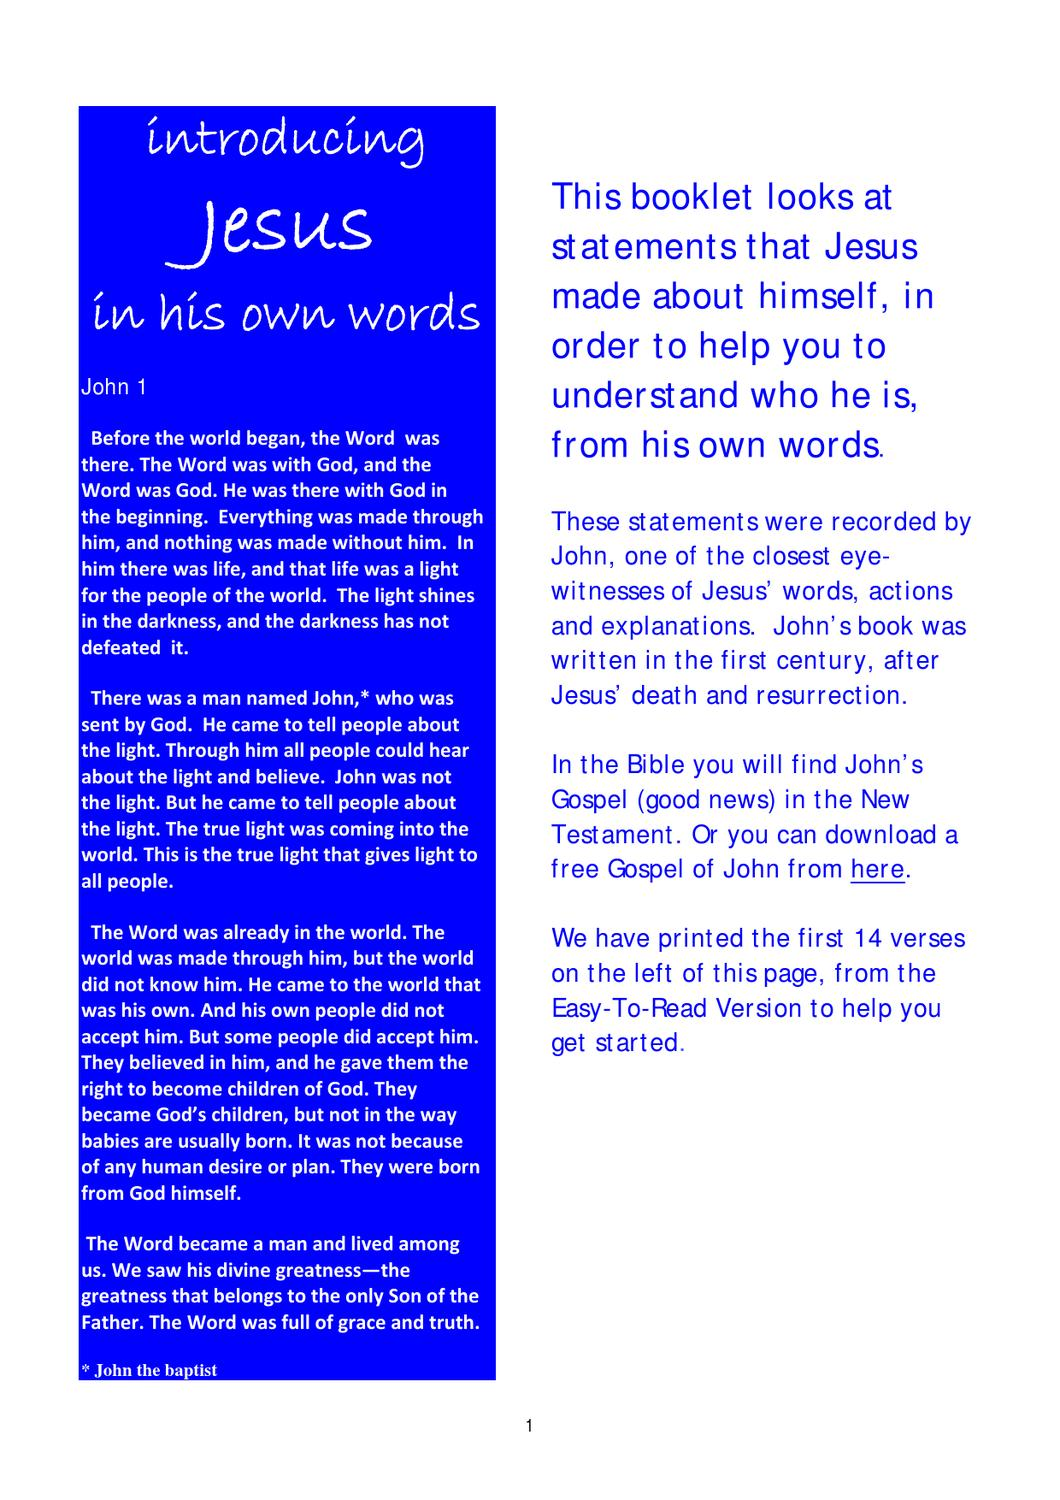 Nuneaton Corps - Introducing Jesus by The Salvation Army UK